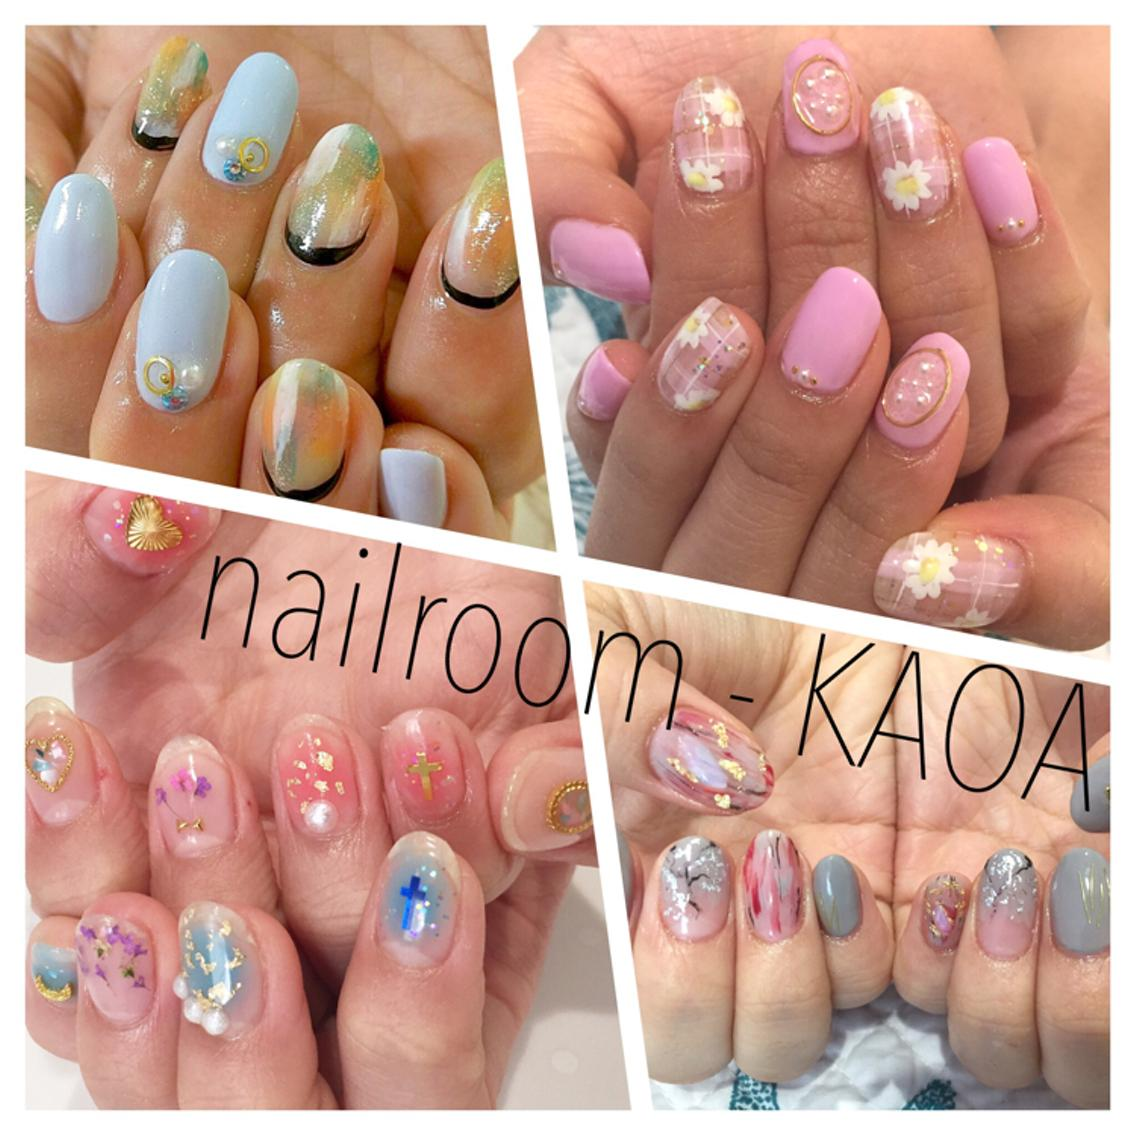 nailroom KANOA所属・nailroom-KANOAの掲載